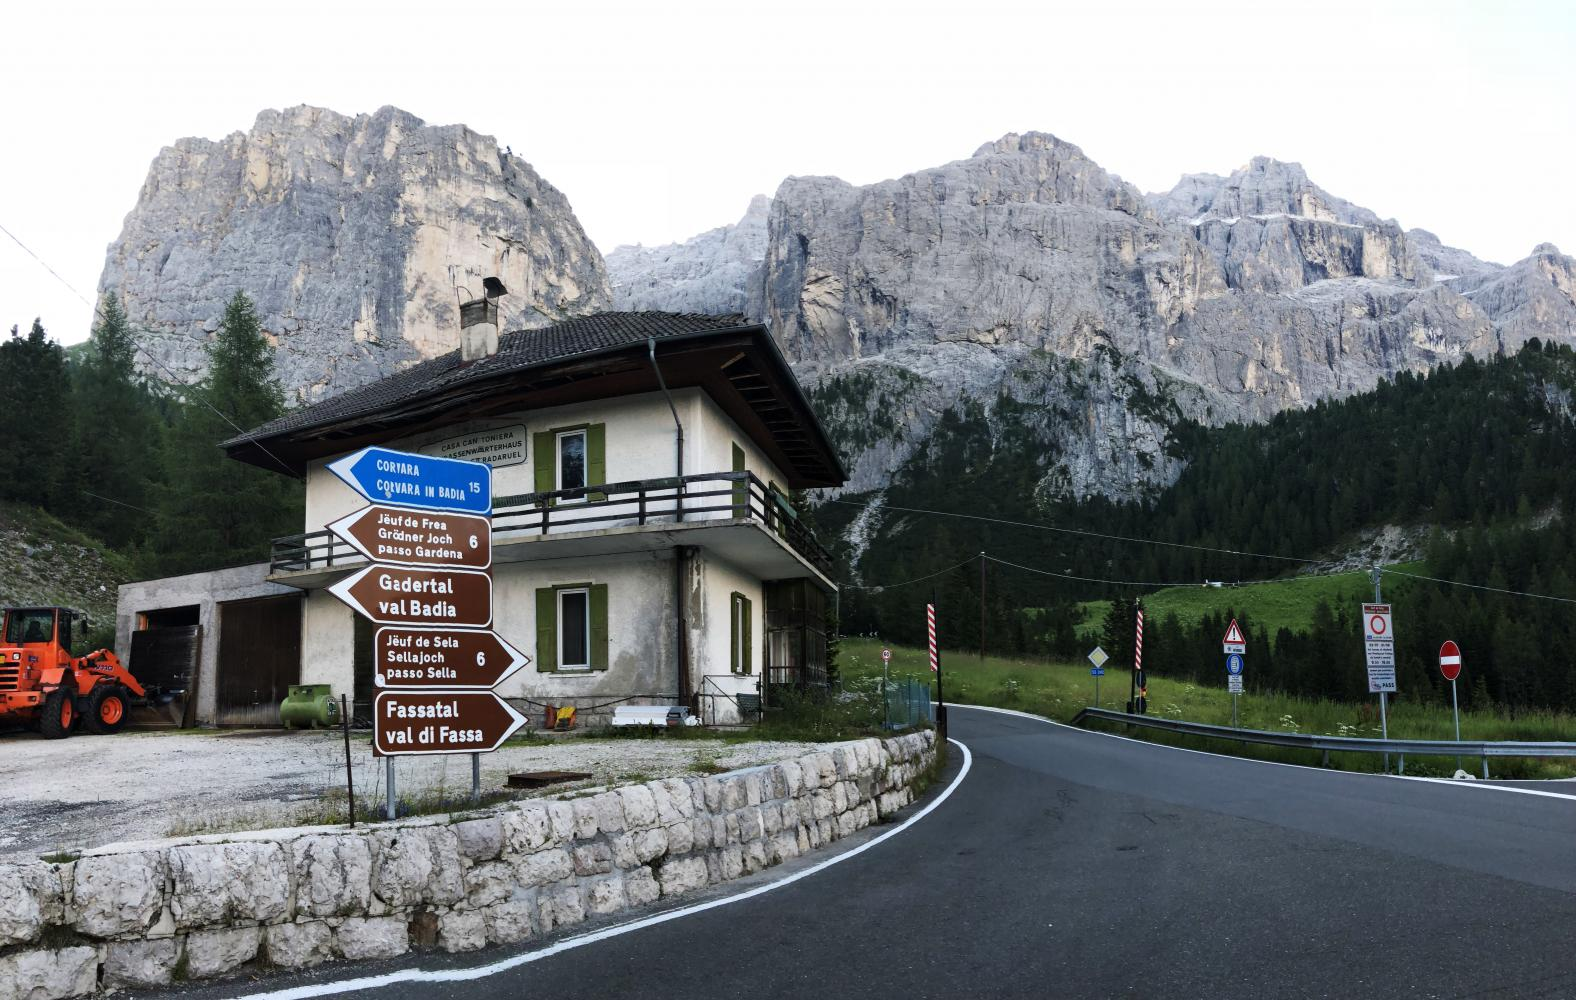 Passo Sella - Plan De Gralba Bike Climb - PJAMM Cycling